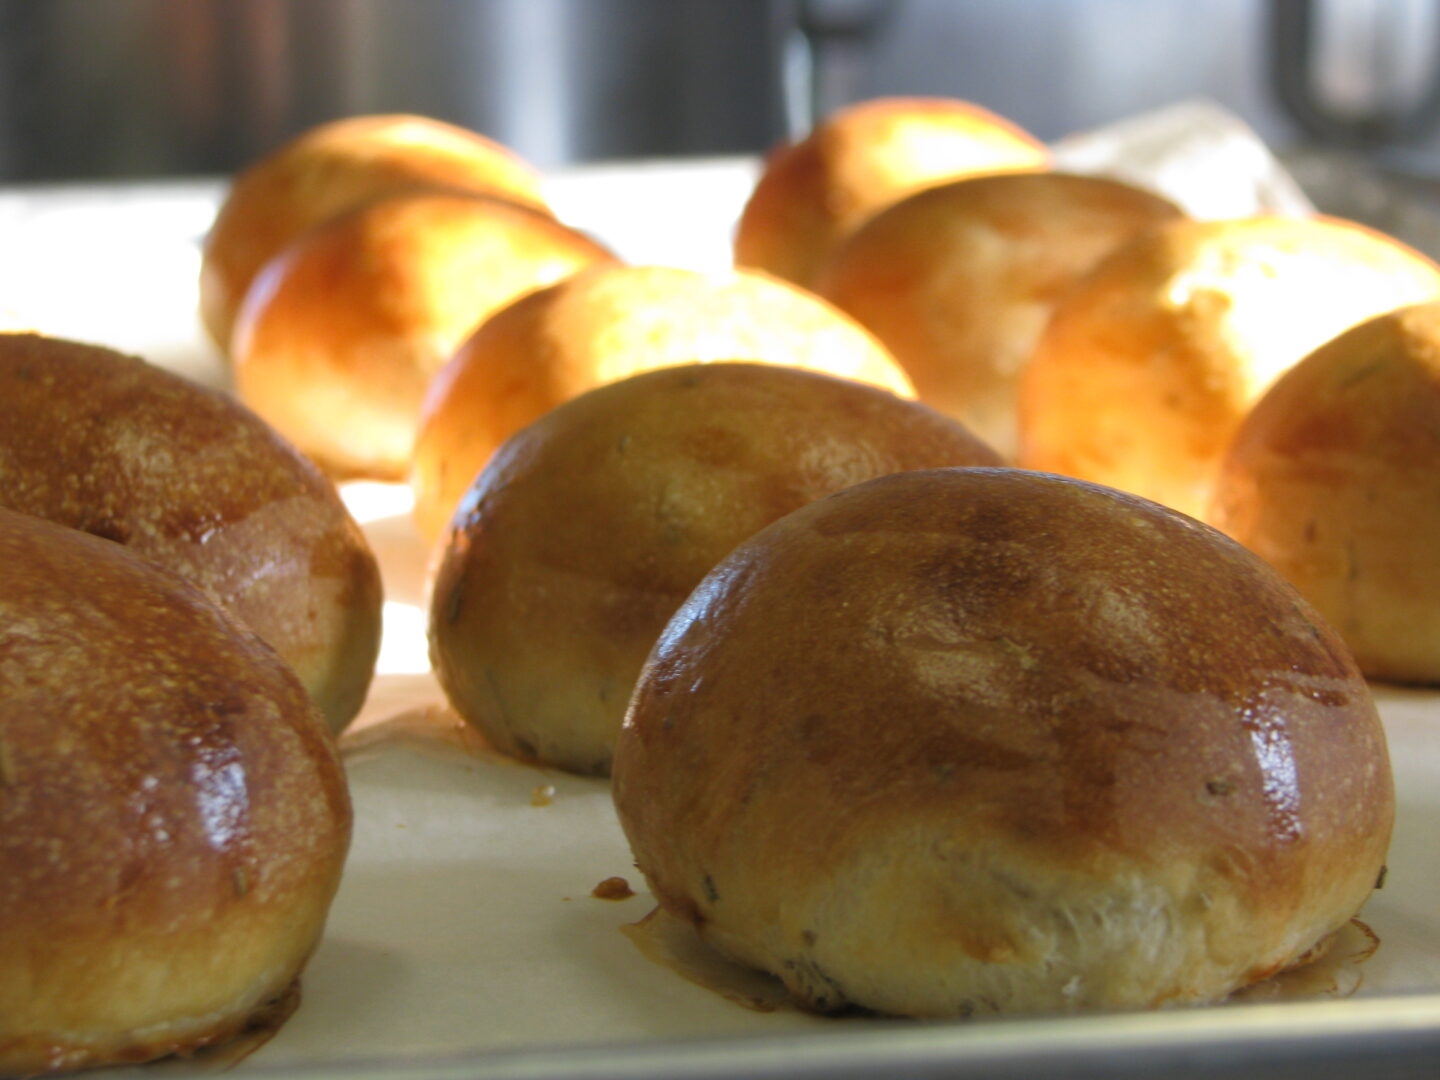 Our olive oil potato rosemary dinner rolls, you can smell the fresh rosemary and taste the tender texture of these rolls